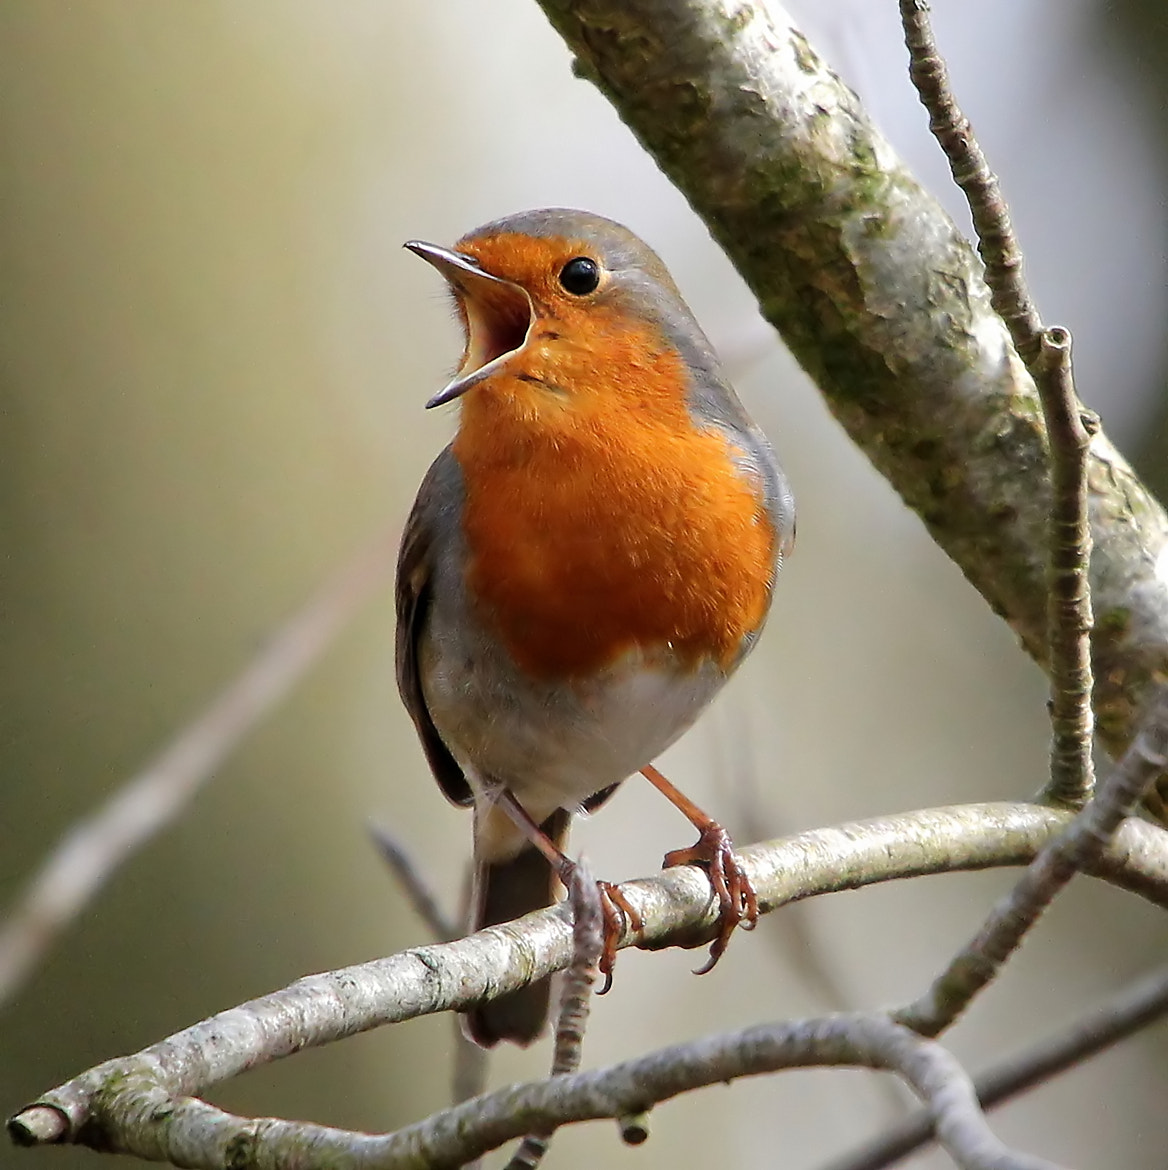 Photograph Robin Passion by Ger Bosma on 500px